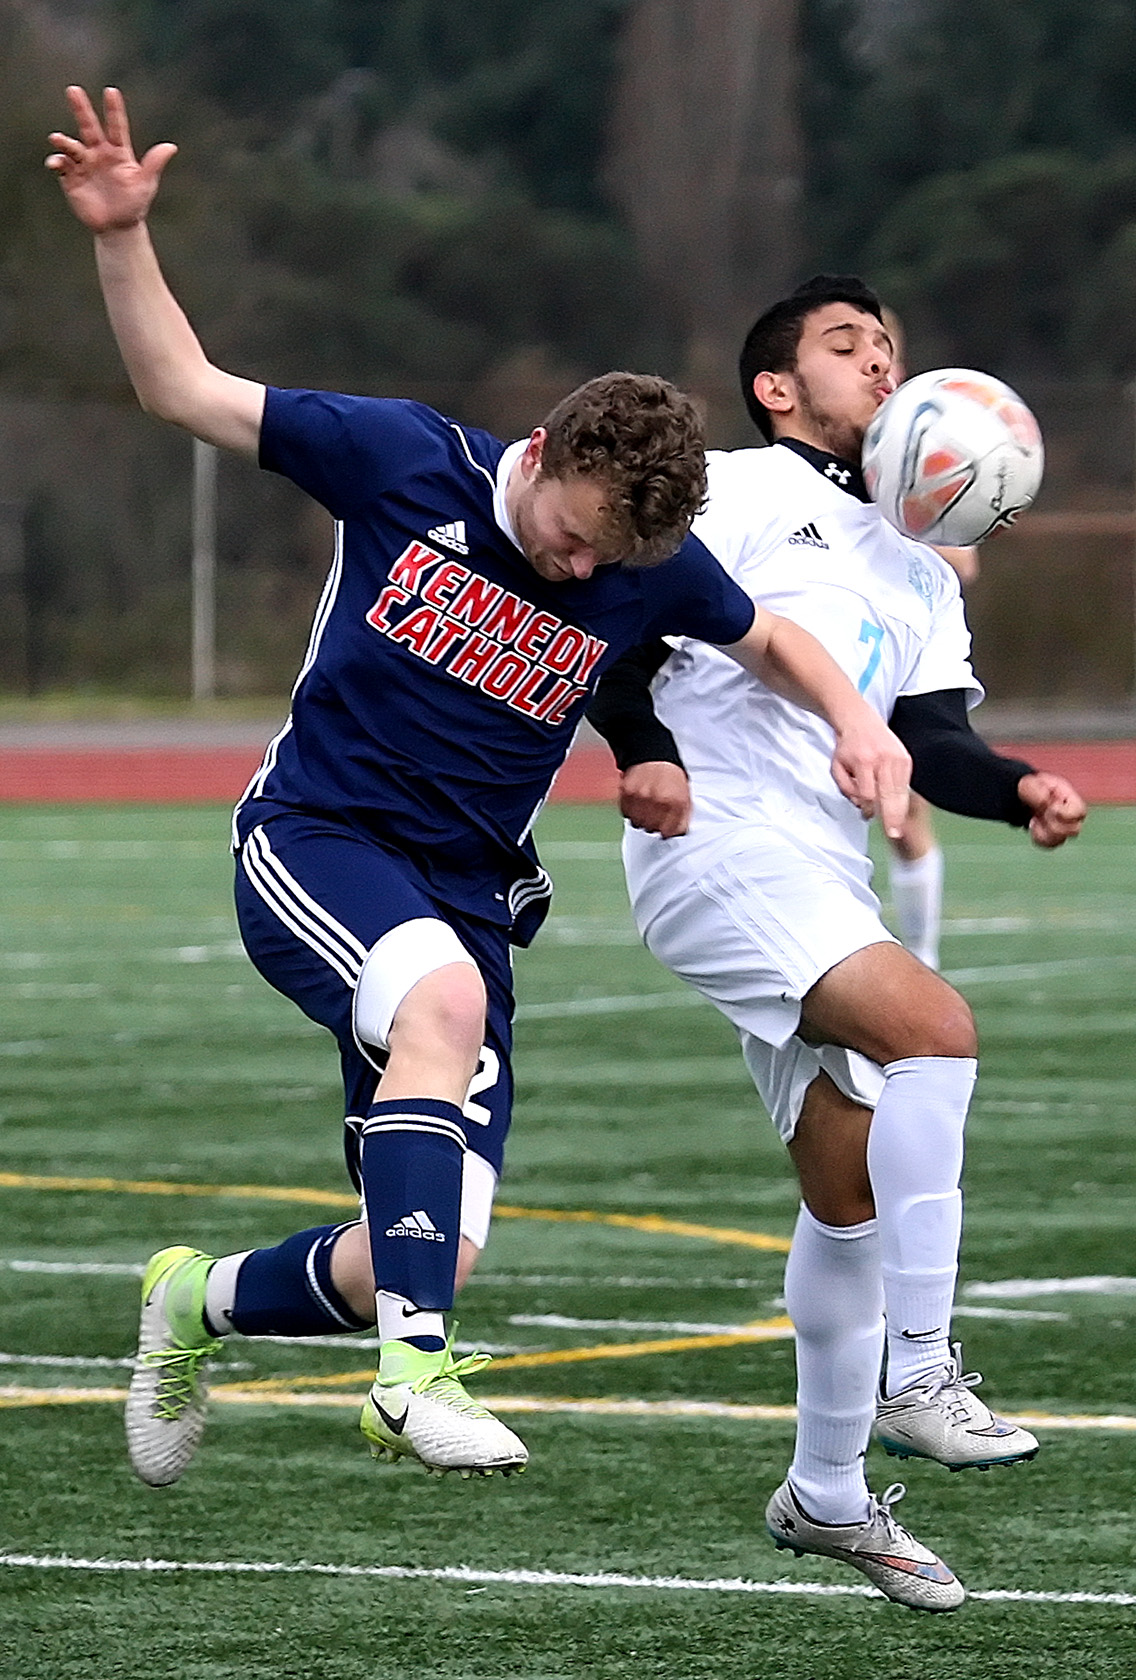 Mustafa Alobaidi of Mt. Rainier chins the ball with pressure from Kennedy Catholic's Luke Tolton.